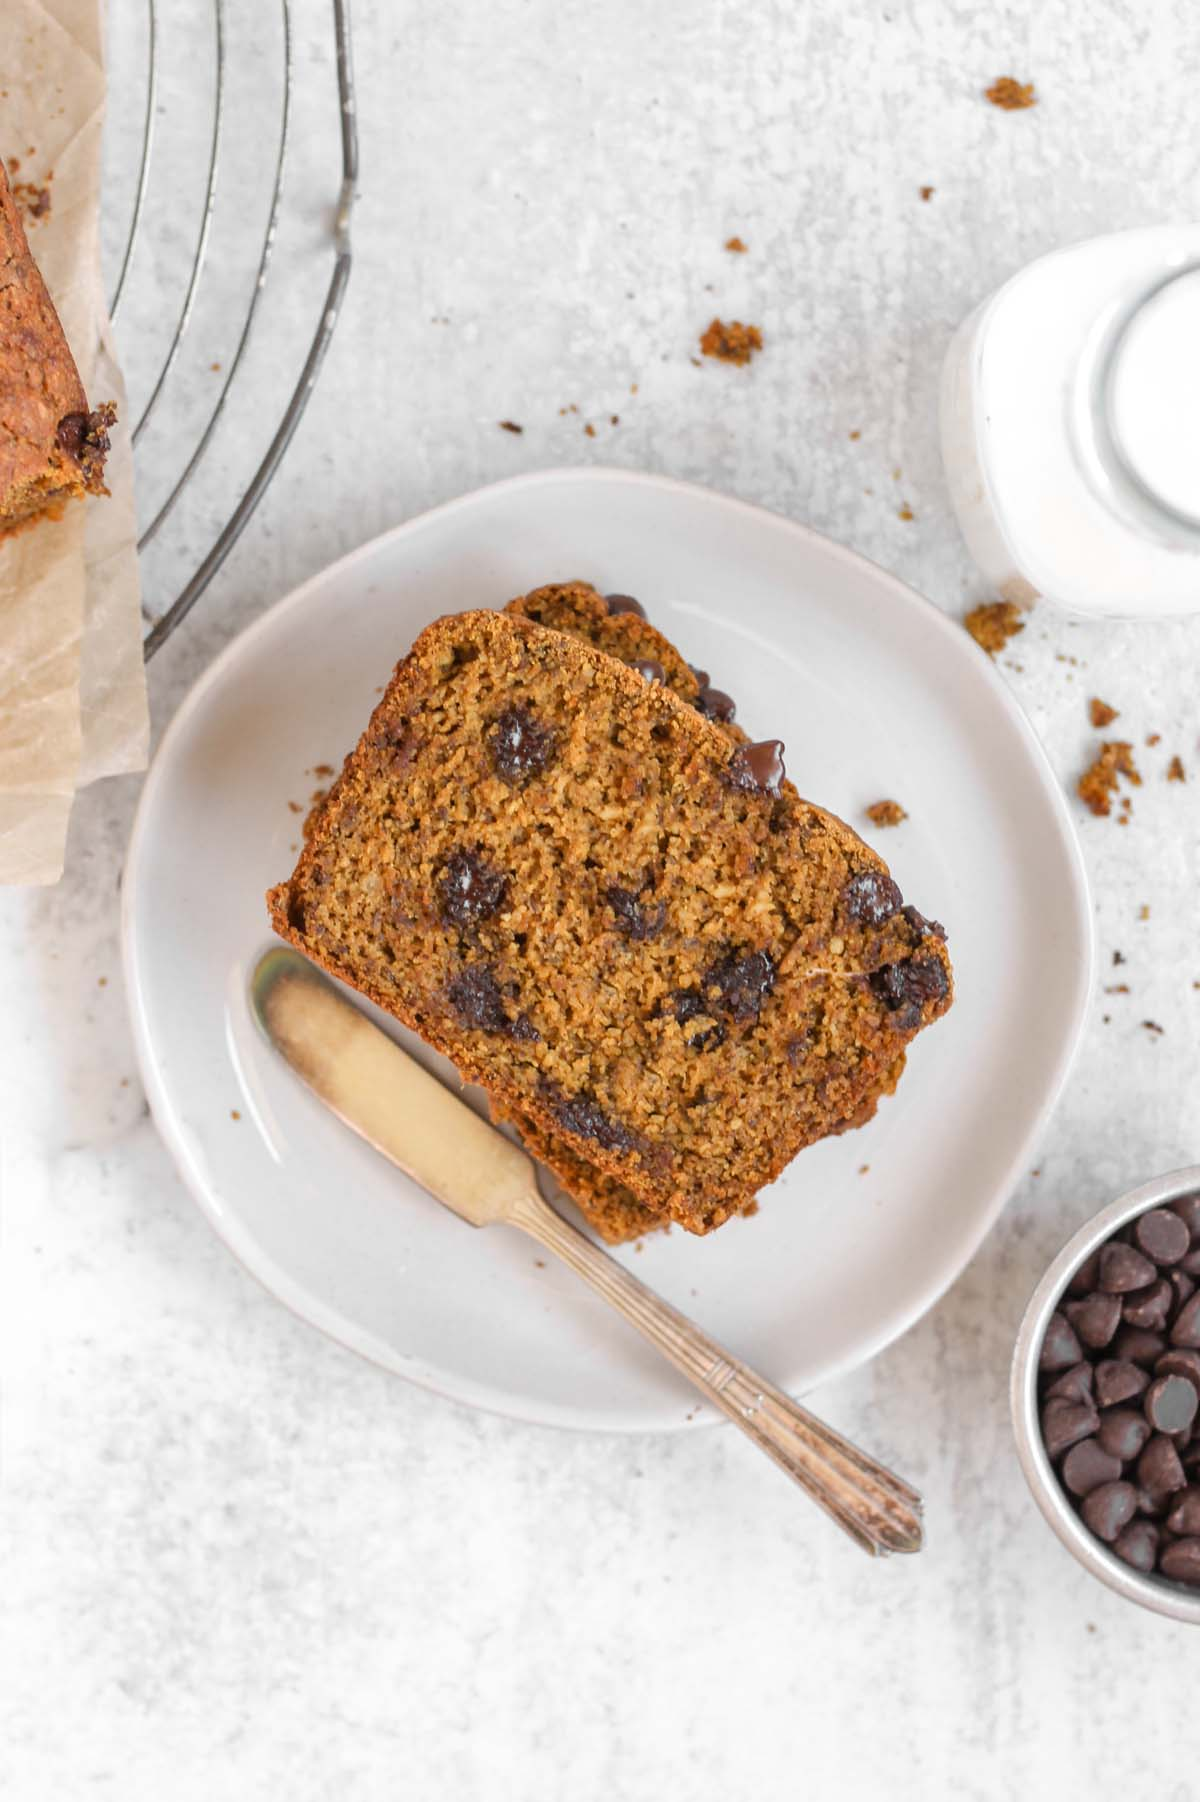 Overhead view of a piece of gluten-free pumpkin chocolate chip bread on a white plate.